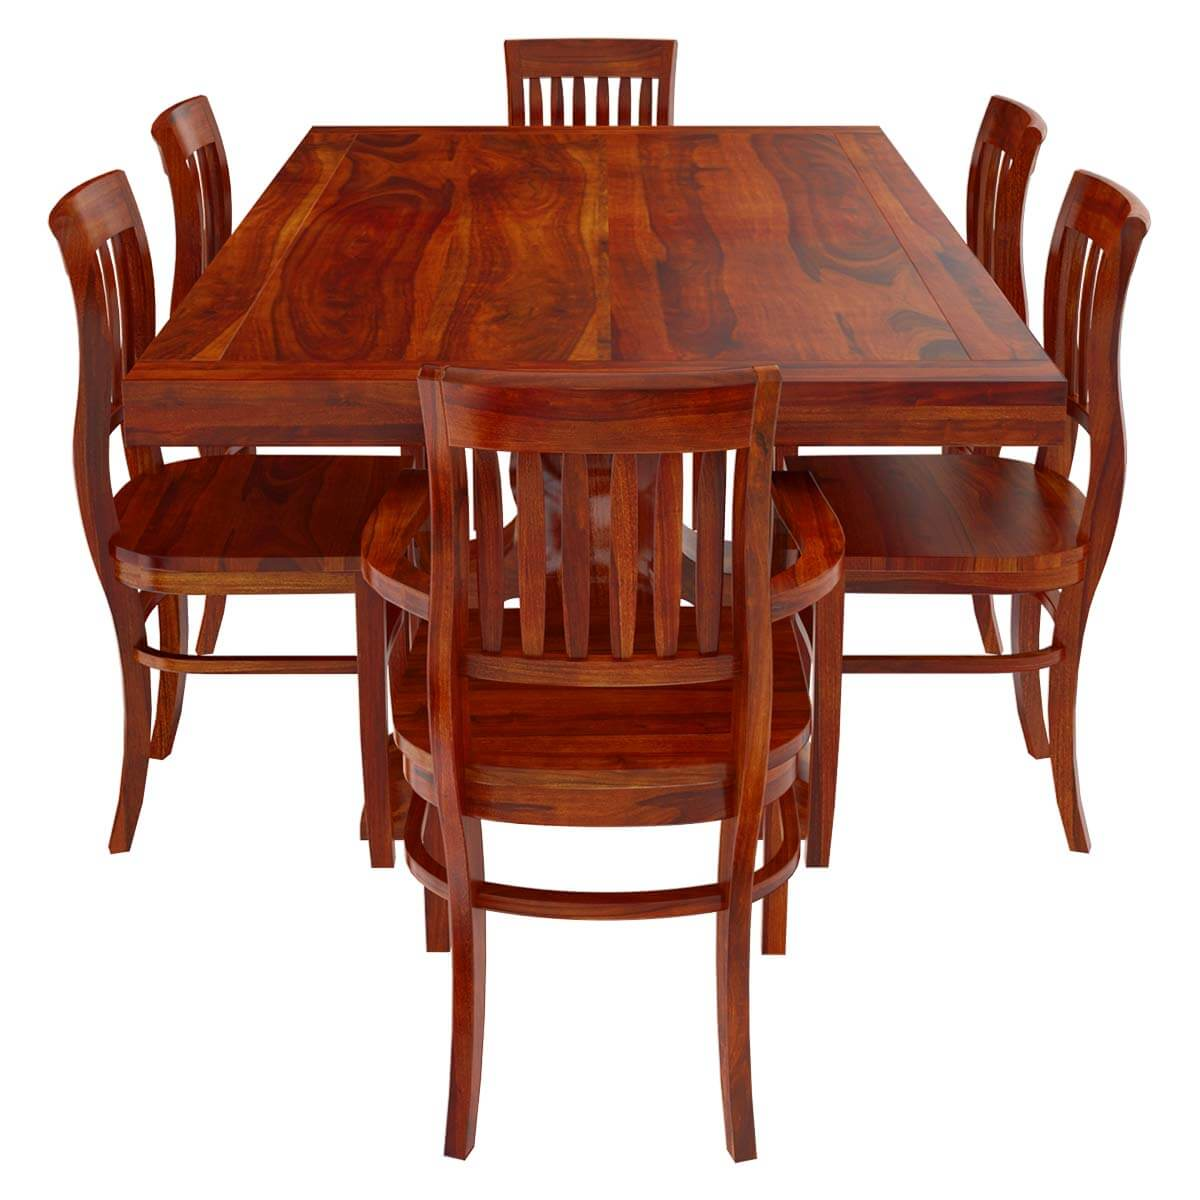 Solid wood 7 piece trestle pedestal dining table barrel back chairs Trestle dining table